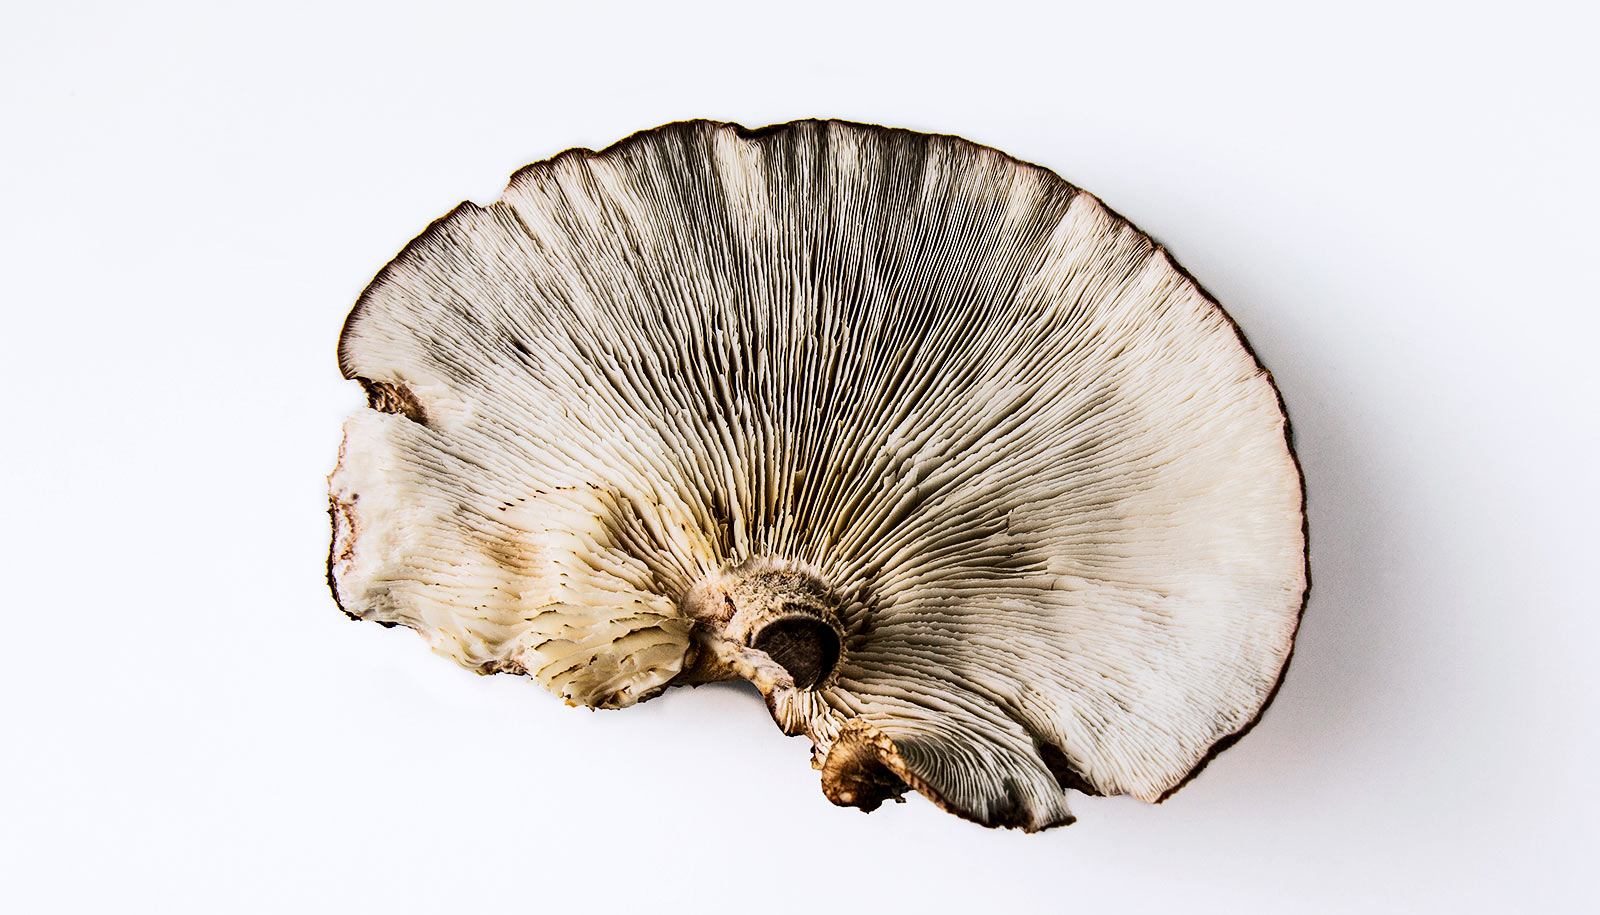 Eat mushrooms to keep your brain sharp?